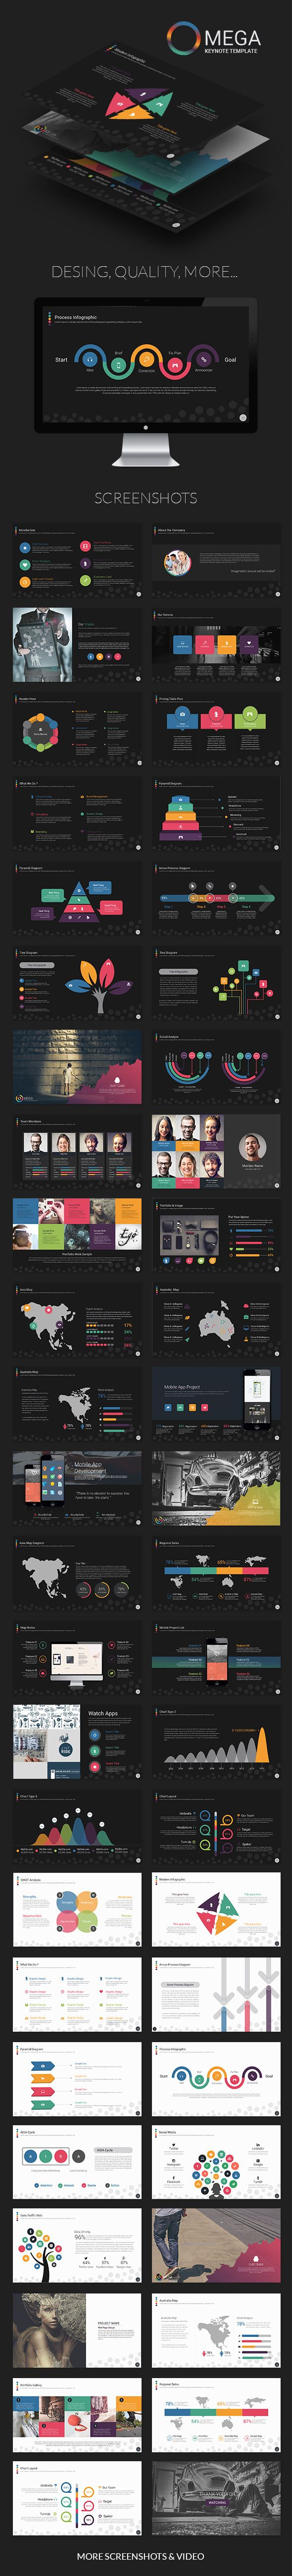 Omega Keynote Template #slides #design Download: http://graphicriver.net/item/omega-keynote-template/11781301?ref=ksioks